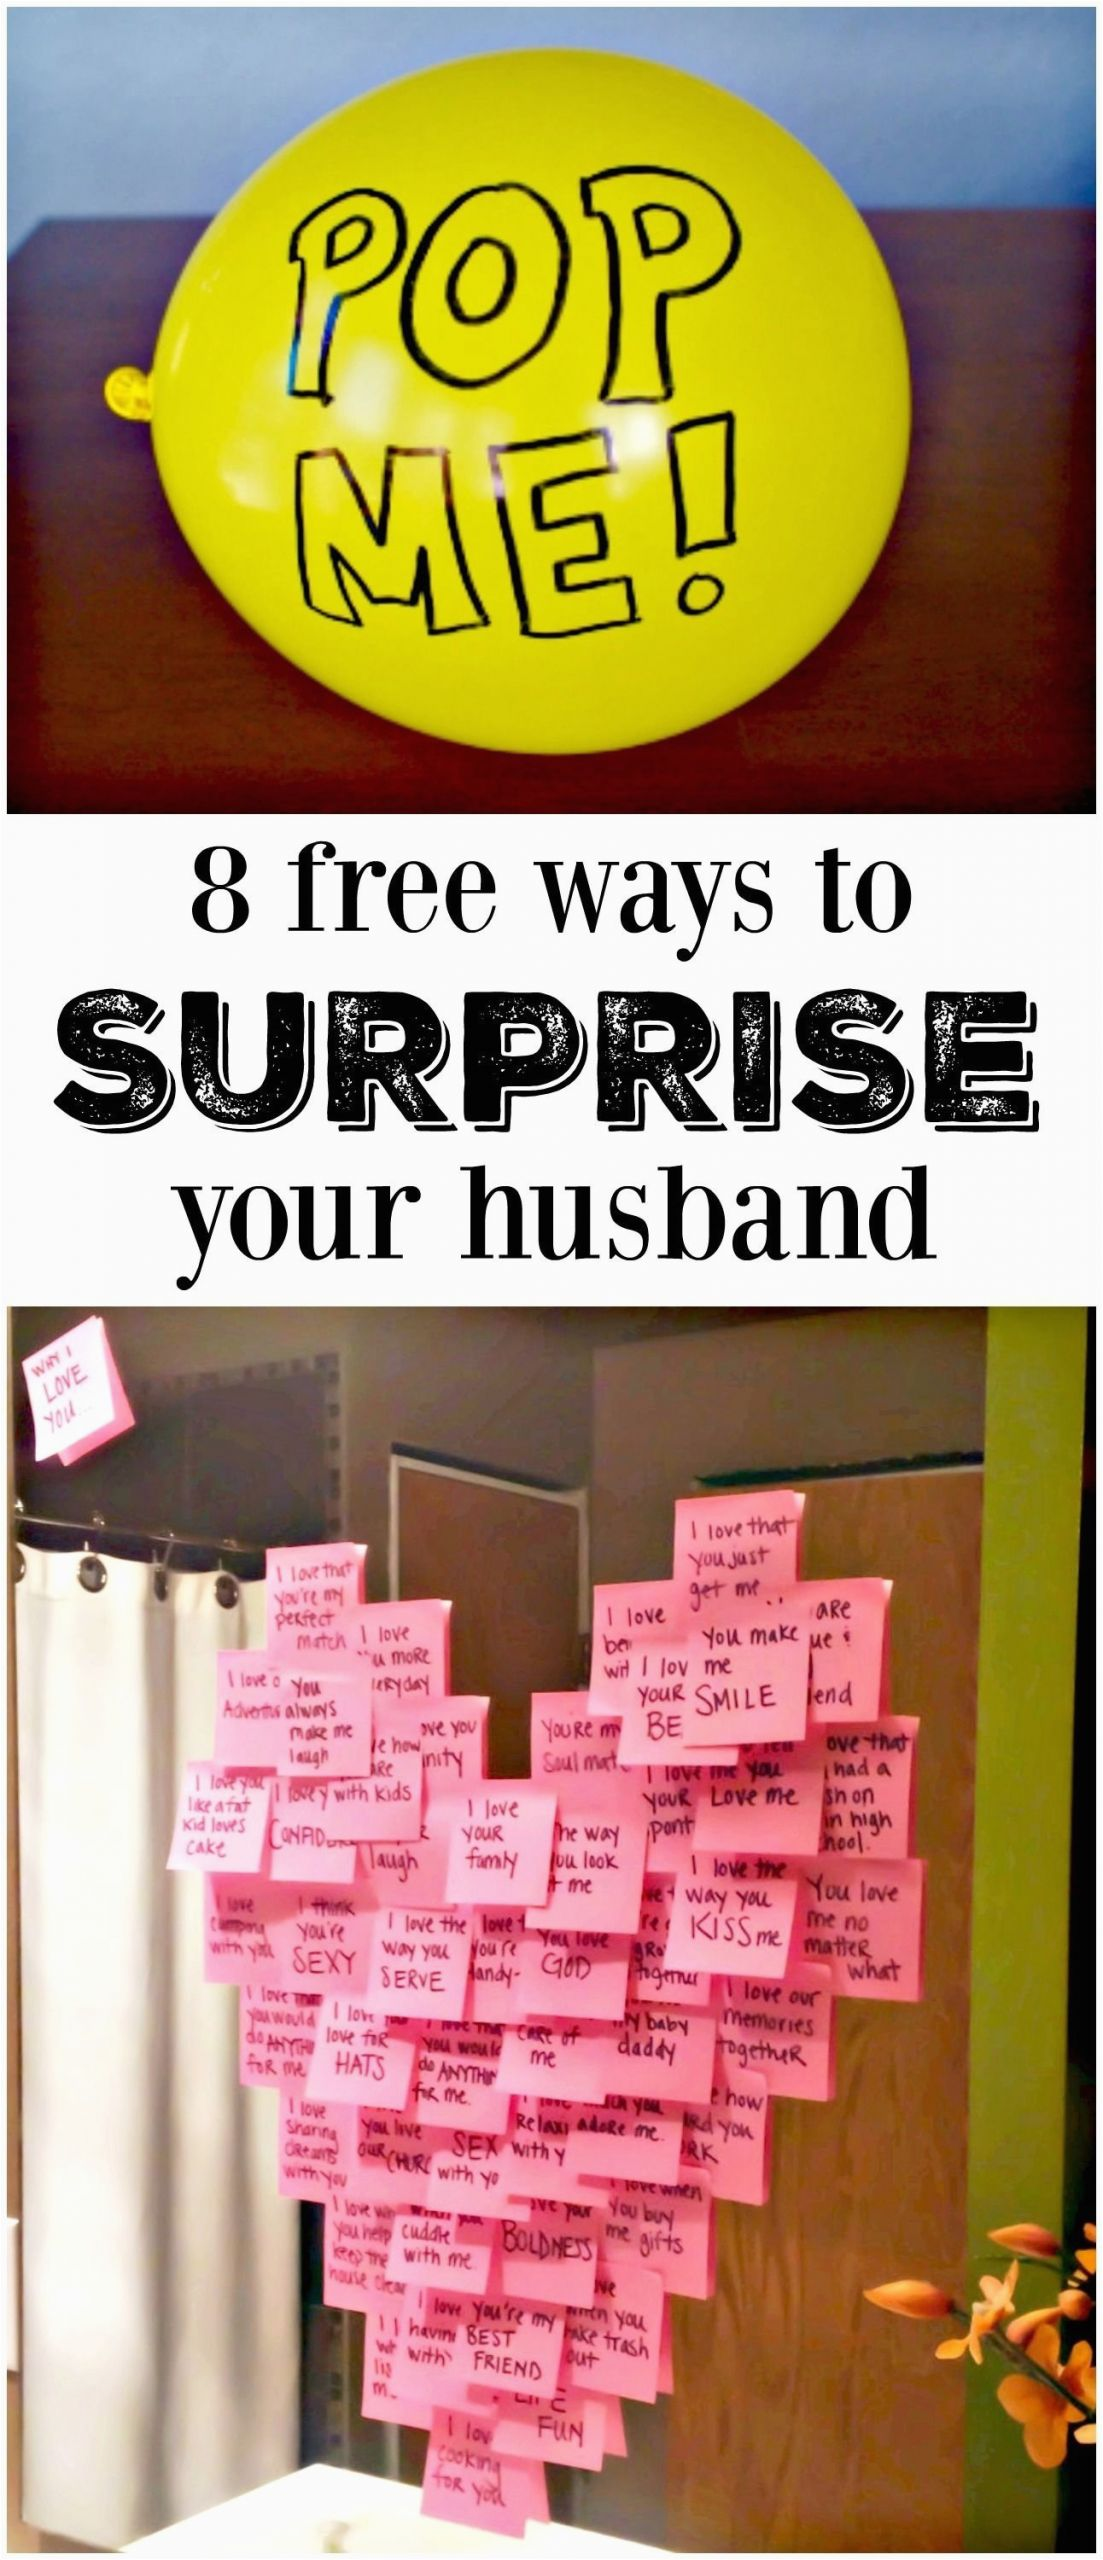 10 amazing creative birthday ideas for husband